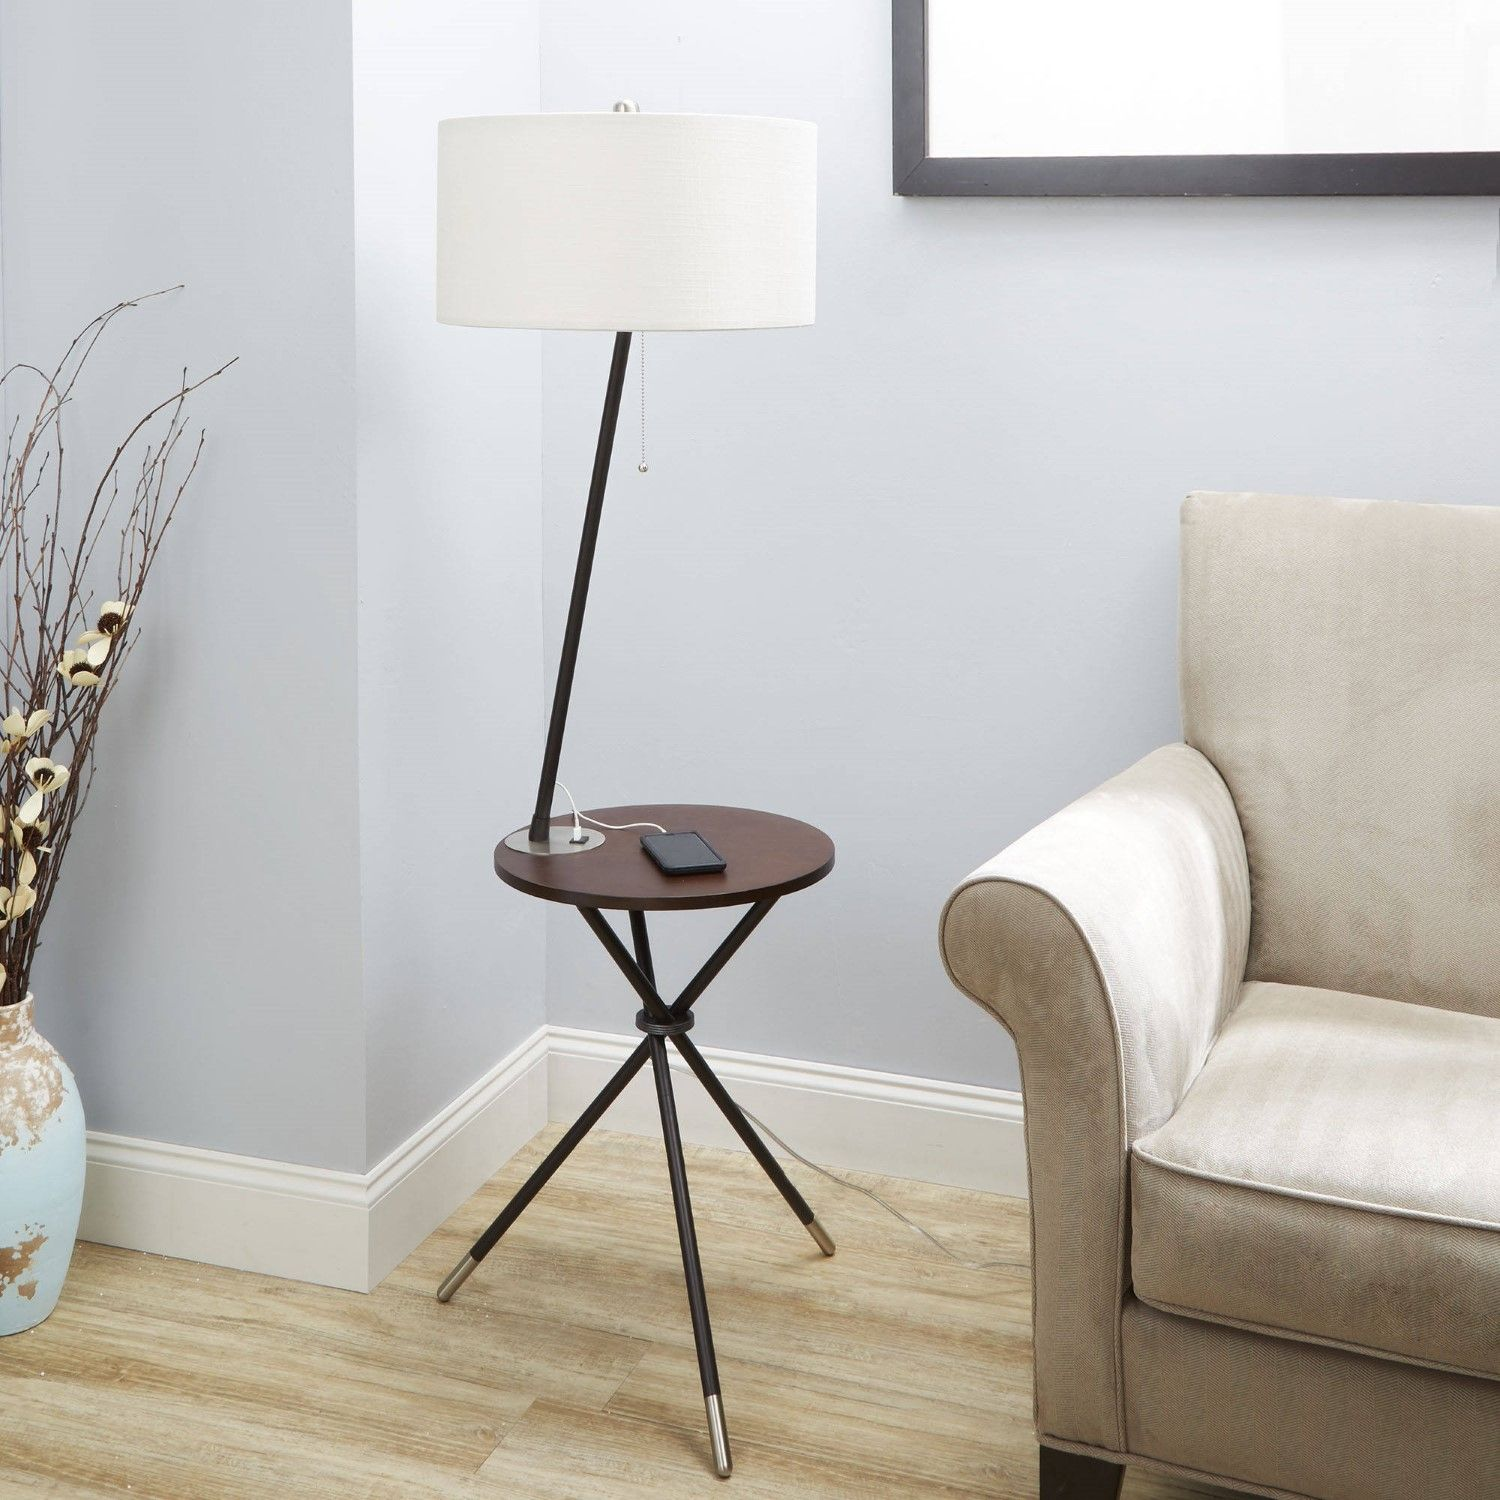 Better Homes And Gardens 4 9 Tripod End Table Floor Lamp Black